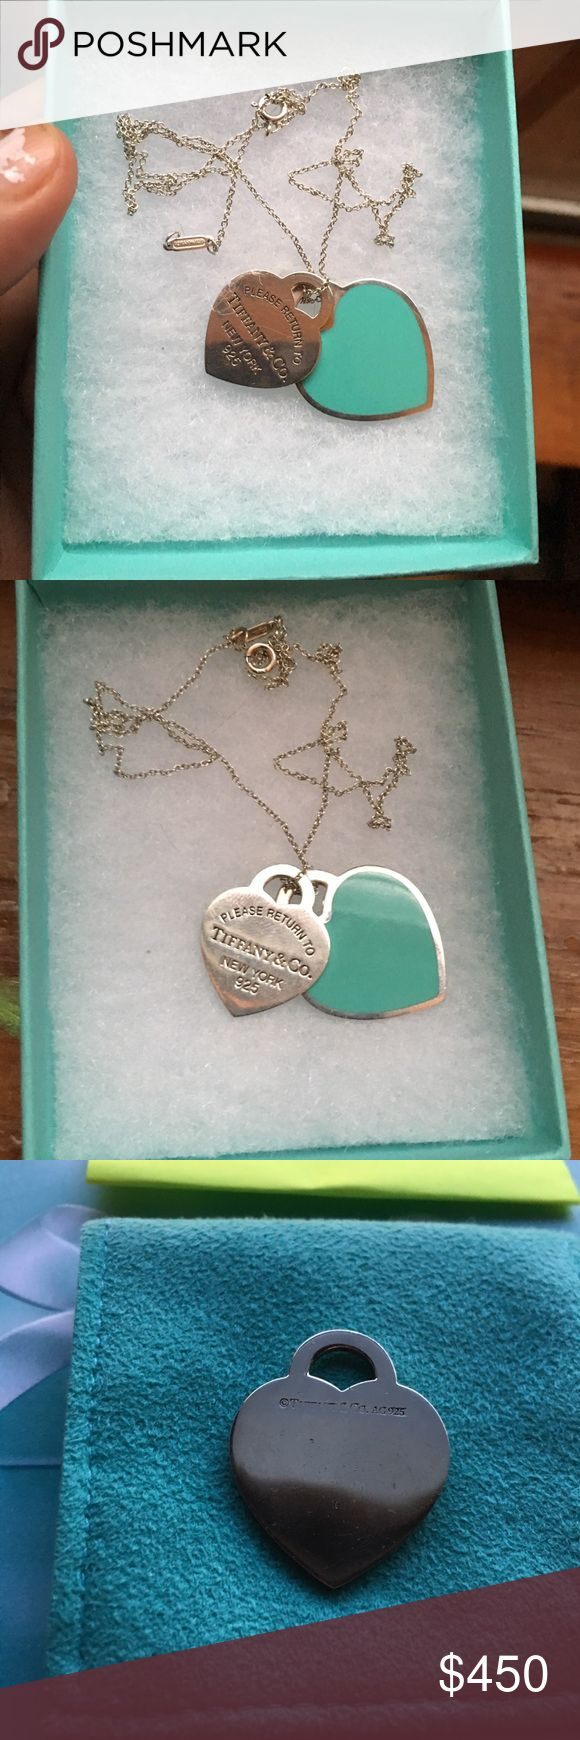 """Tiffany & co double enamel heart Necklace 20""""-SALE Authentic Tiffany & Co double heart necklace  Medium heart has scratches and engraving. Large Enamel Heart has scratches on silver stamp is starting to rub off due to the hearts rubbing but you still can see it. 925 Sterling silver chain in also Tiffany & co 20"""" Long. Used preowned condition comes with dust bag only. Tiffany & Co. Jewelry Necklaces"""